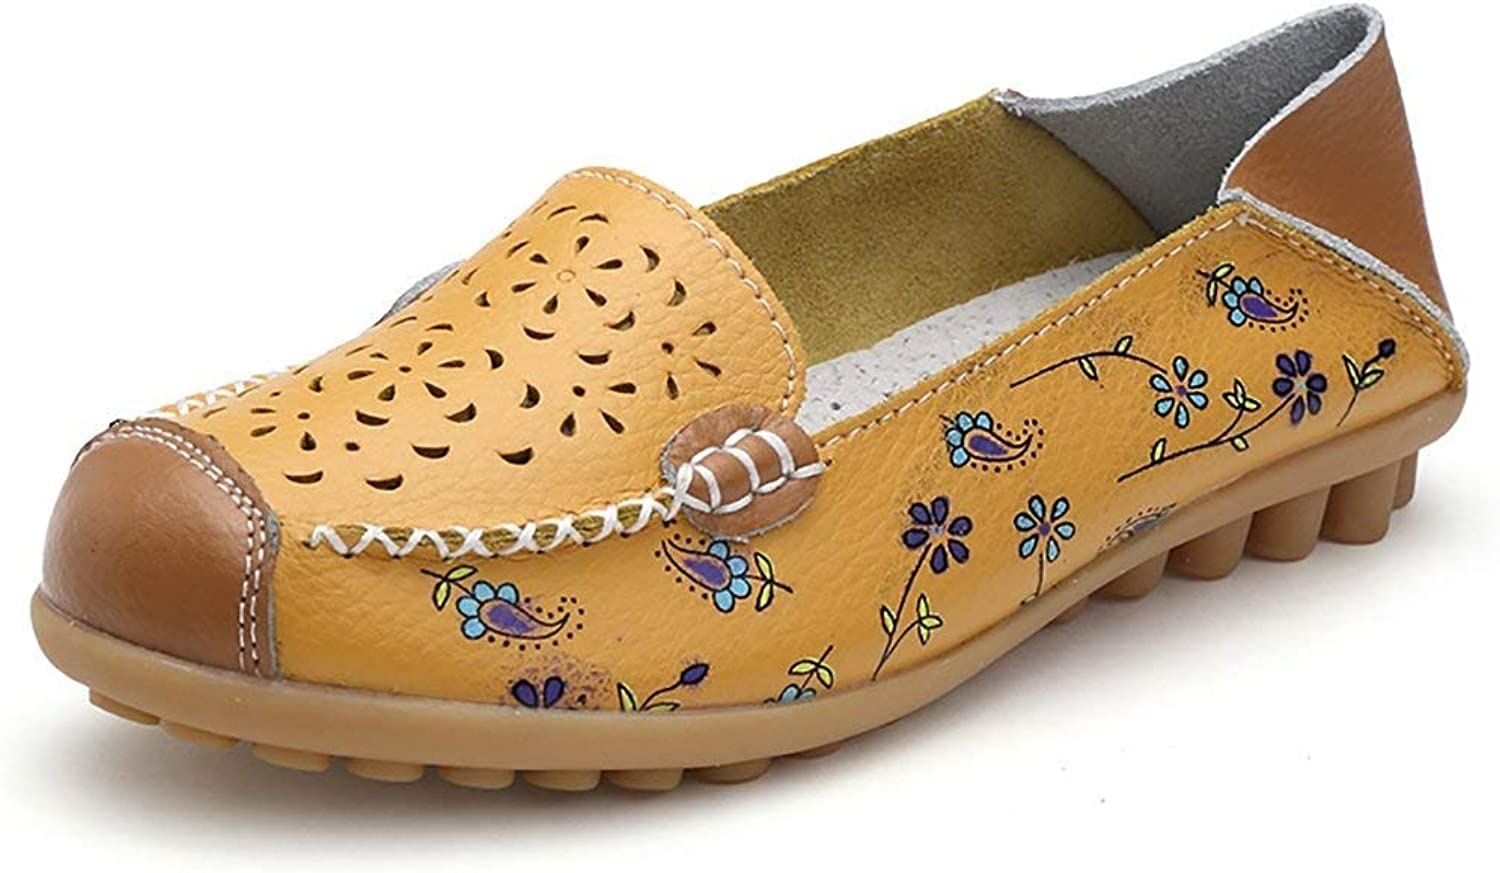 A-LING Womens Suede Flats Comfort Slip On Casual Driving Loafers